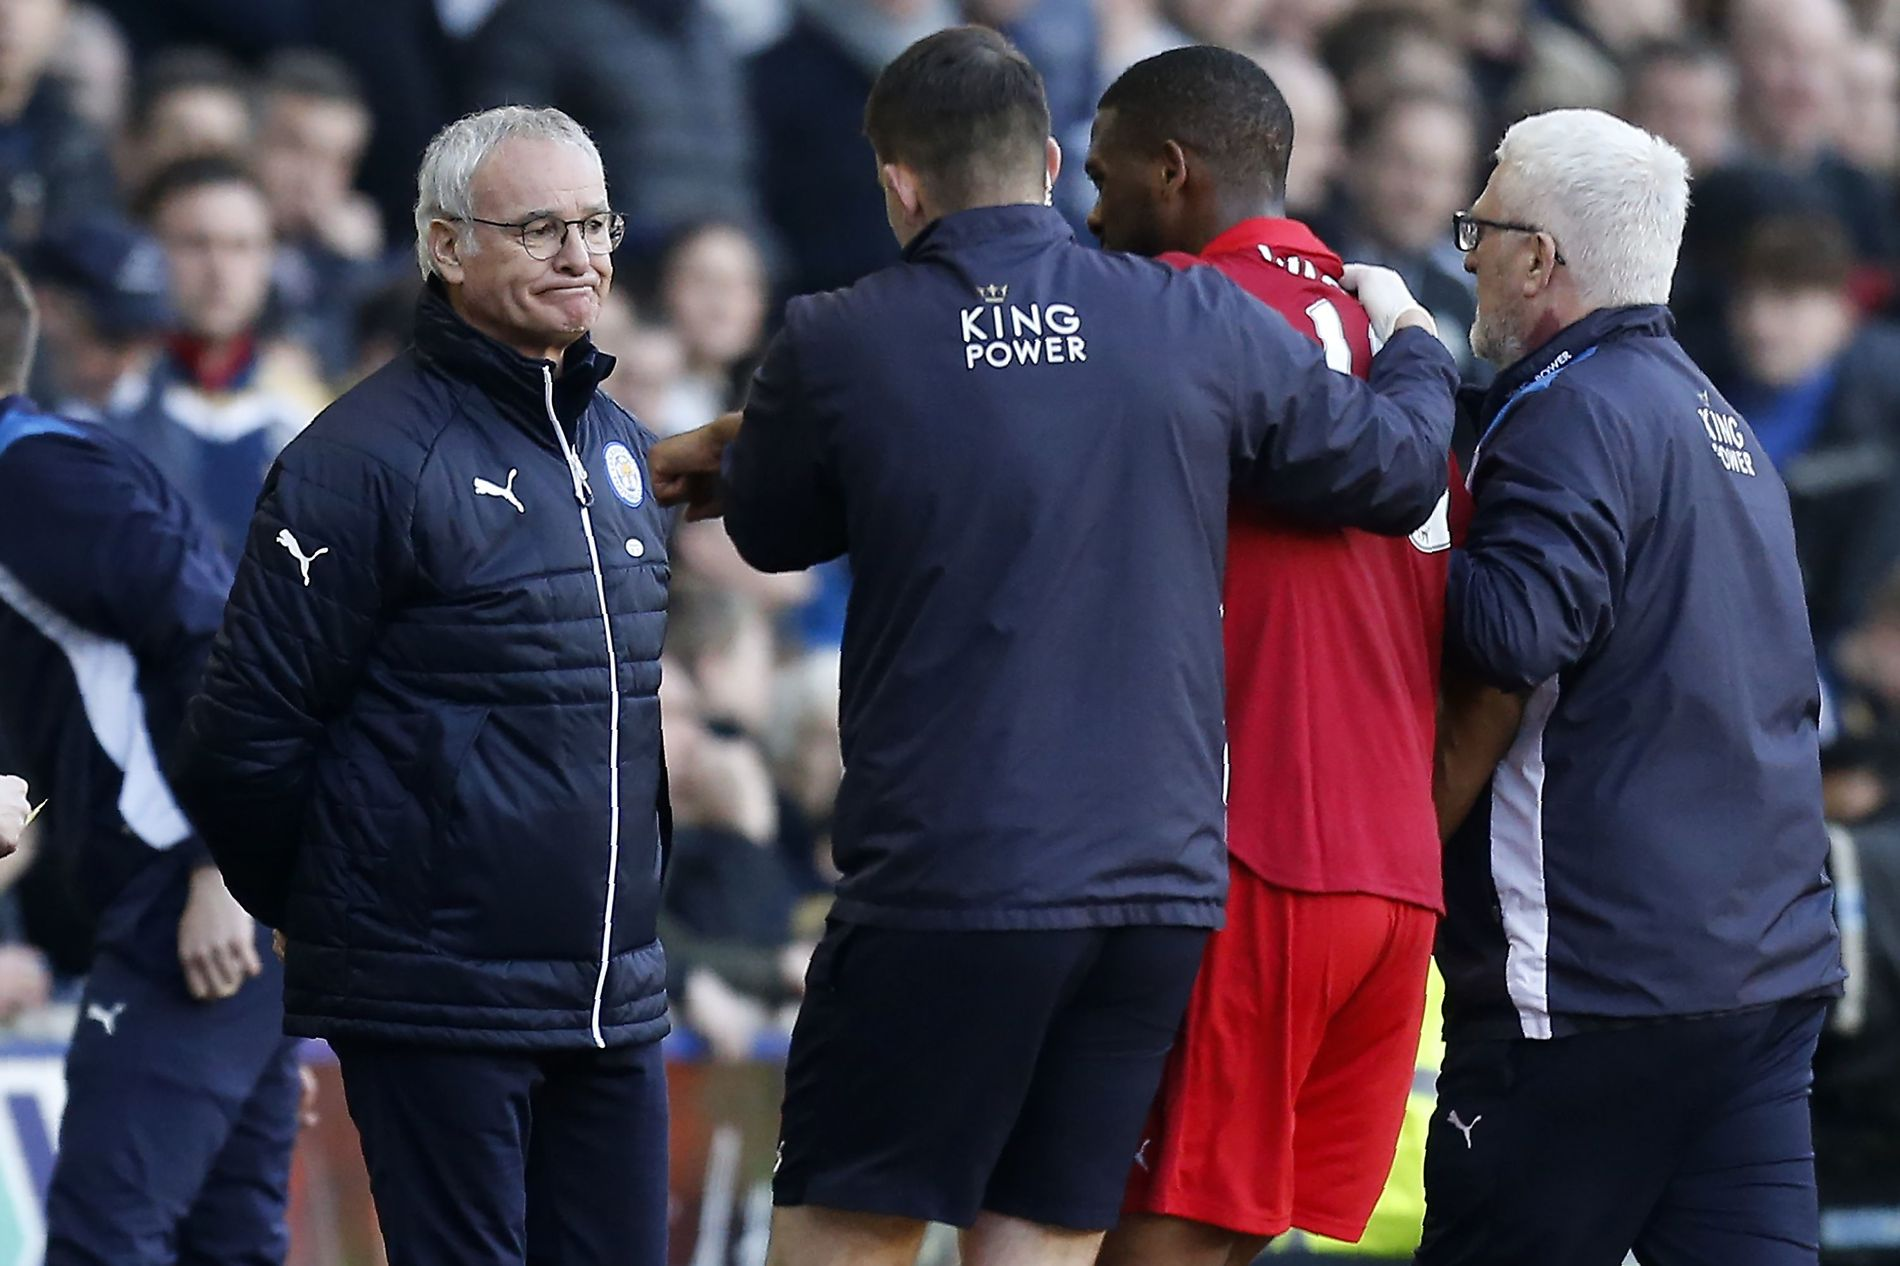 KRISE: Claudio Ranieri (t.v.) ser at forsvarer Molla Wague måtte av banen i tapet mot League One-laget Millwall.